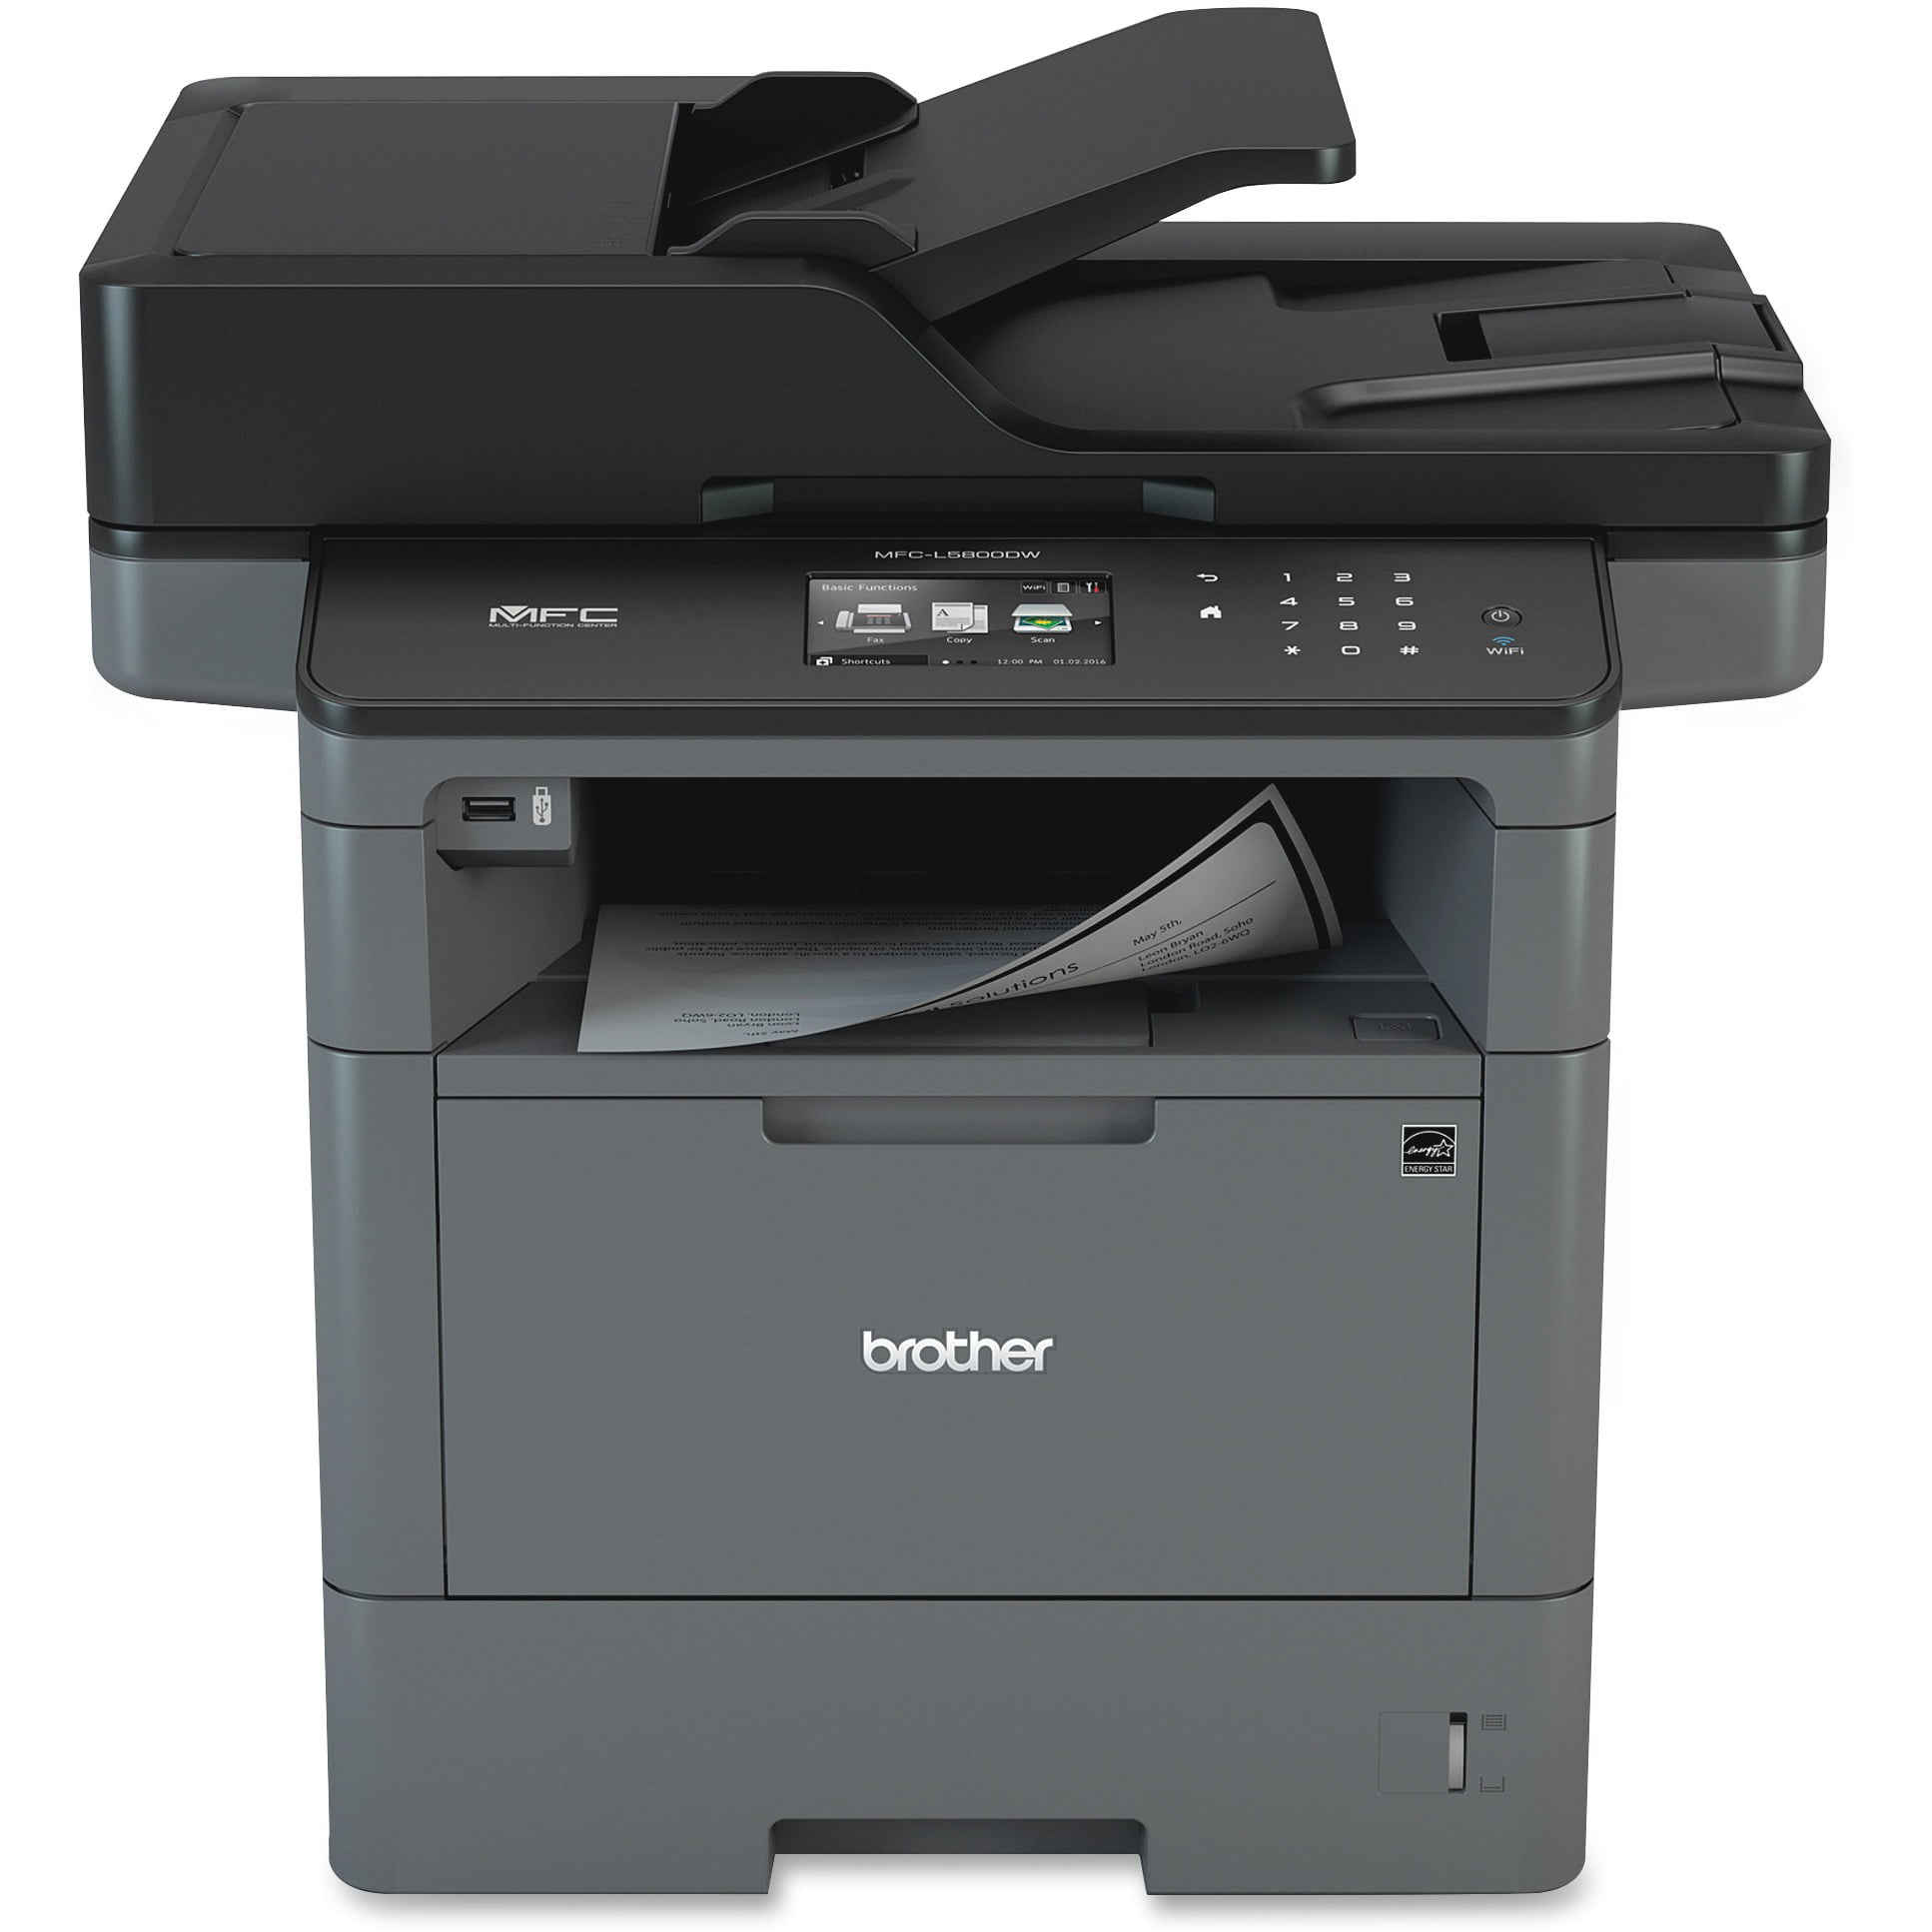 Brother MFC-L5800DW Wireless Monochrome All-in-One Laser Printer, Copy Fax Print Scan by Brother